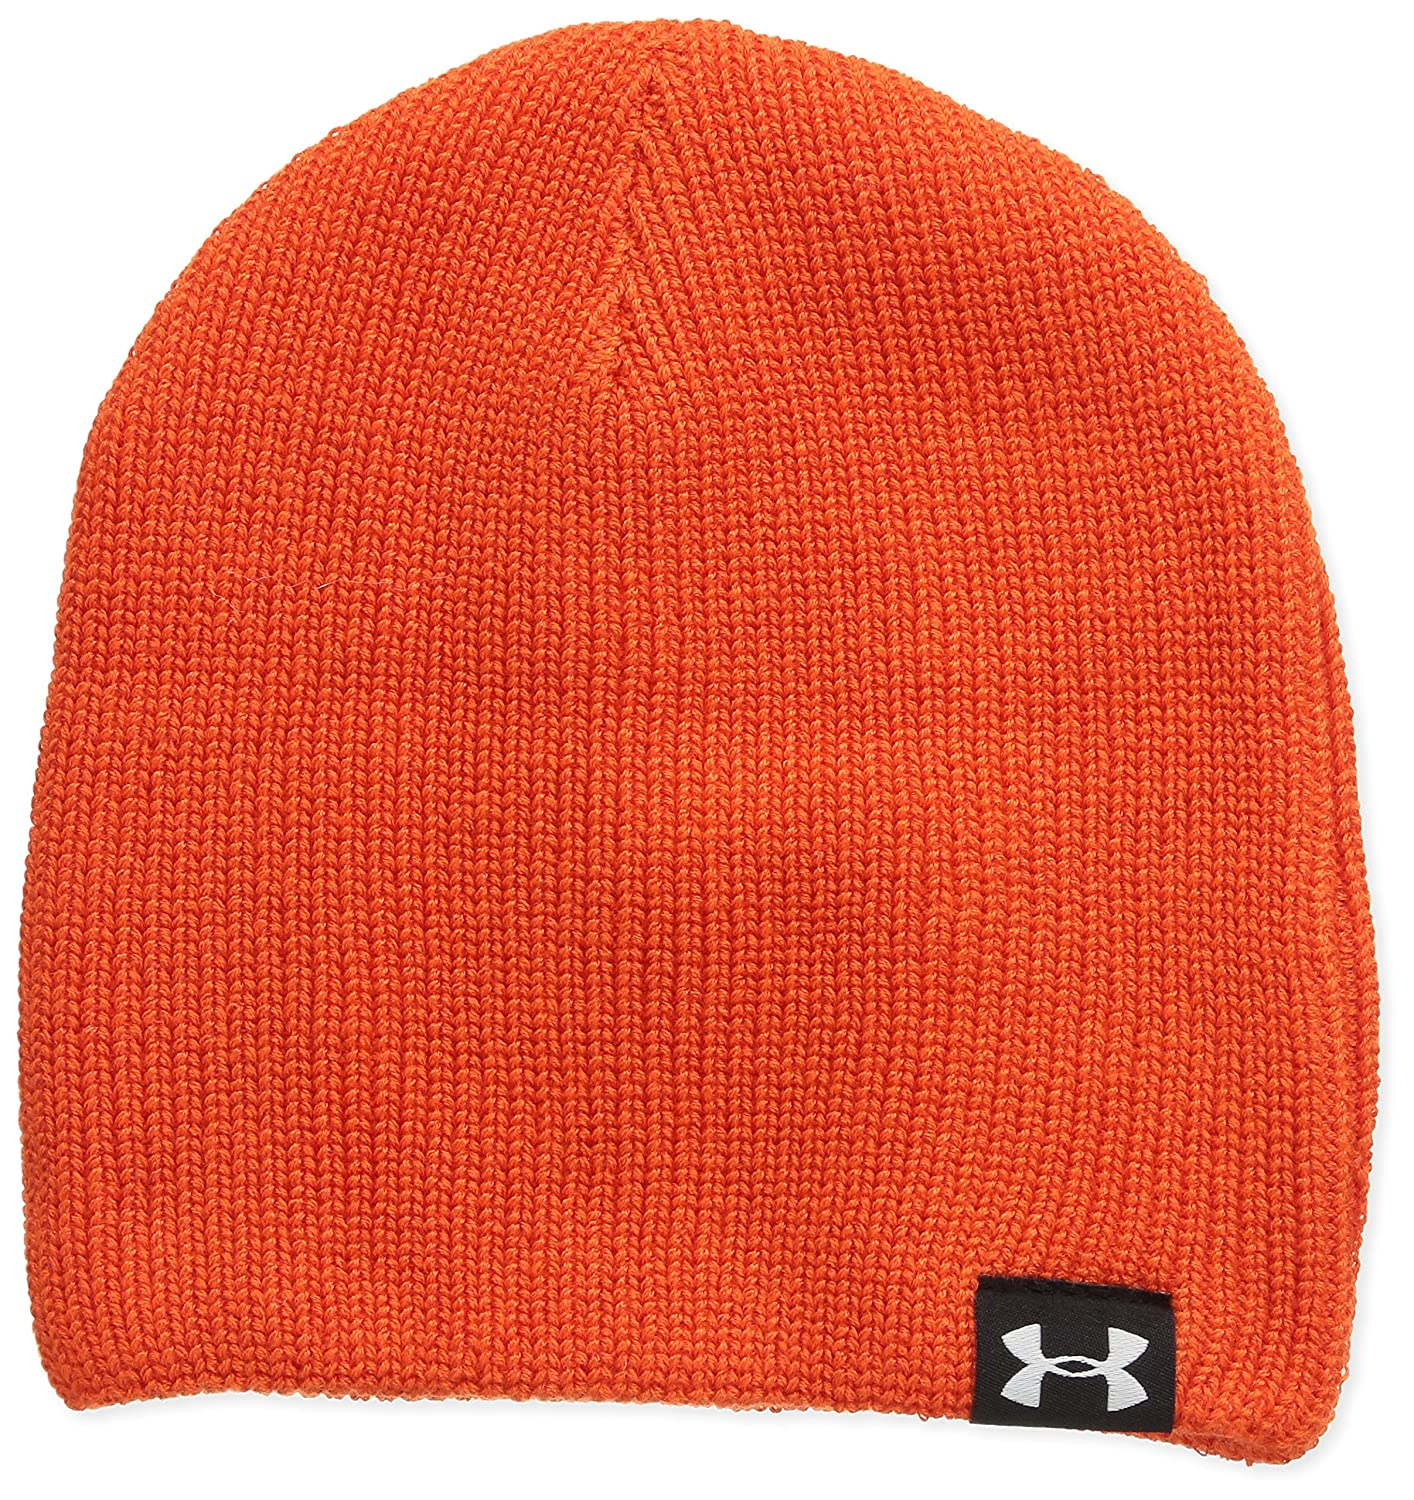 0b2c46ba4e1 greece under armour ua mens basic knit beanie hat 1248713 bd9d8 d04e5